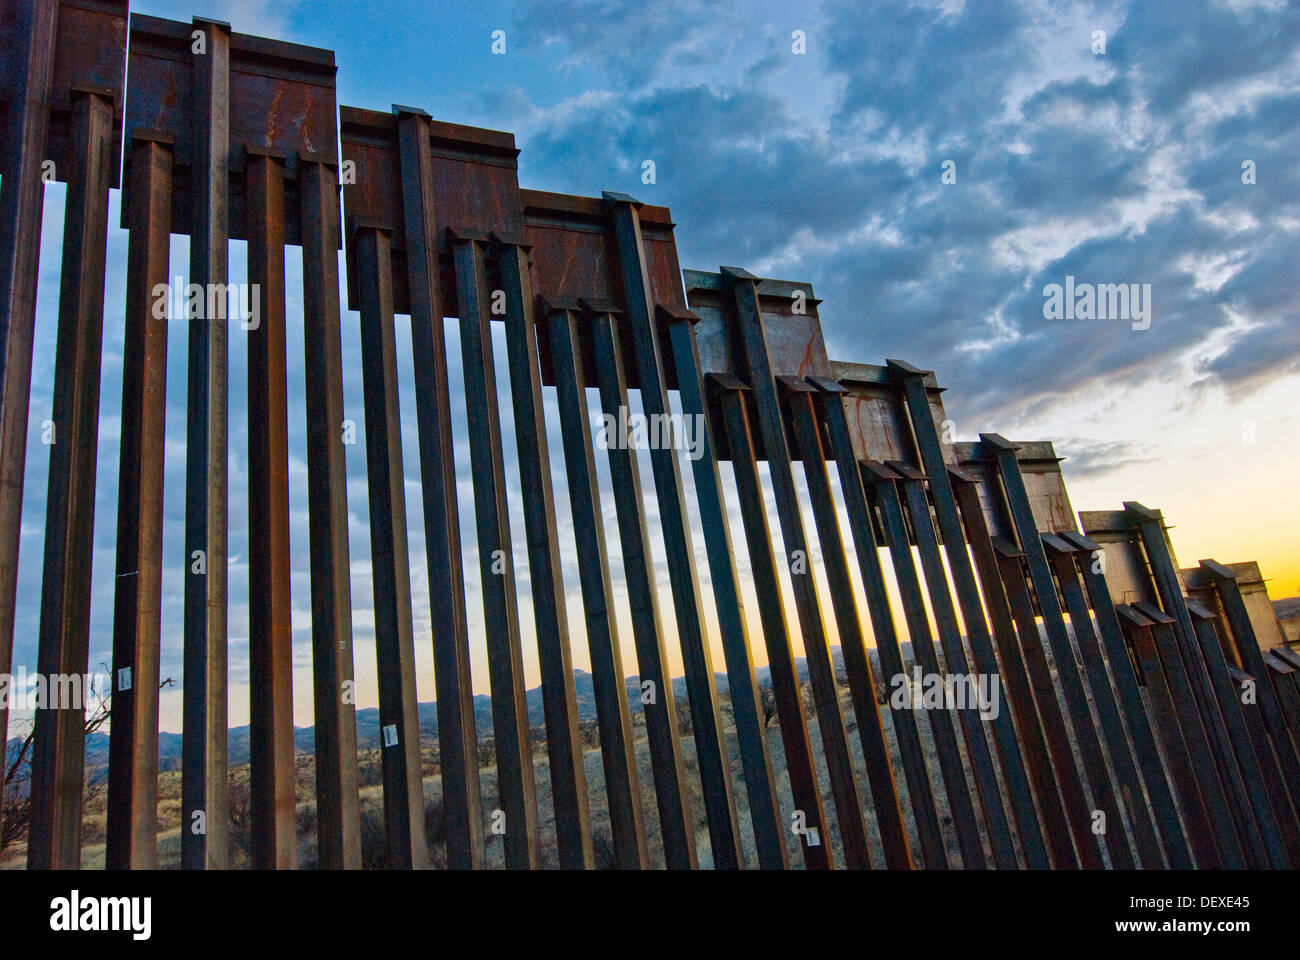 Close Up Of United States Border Fence Us Mexico Border East Of Nogales Arizona Usa